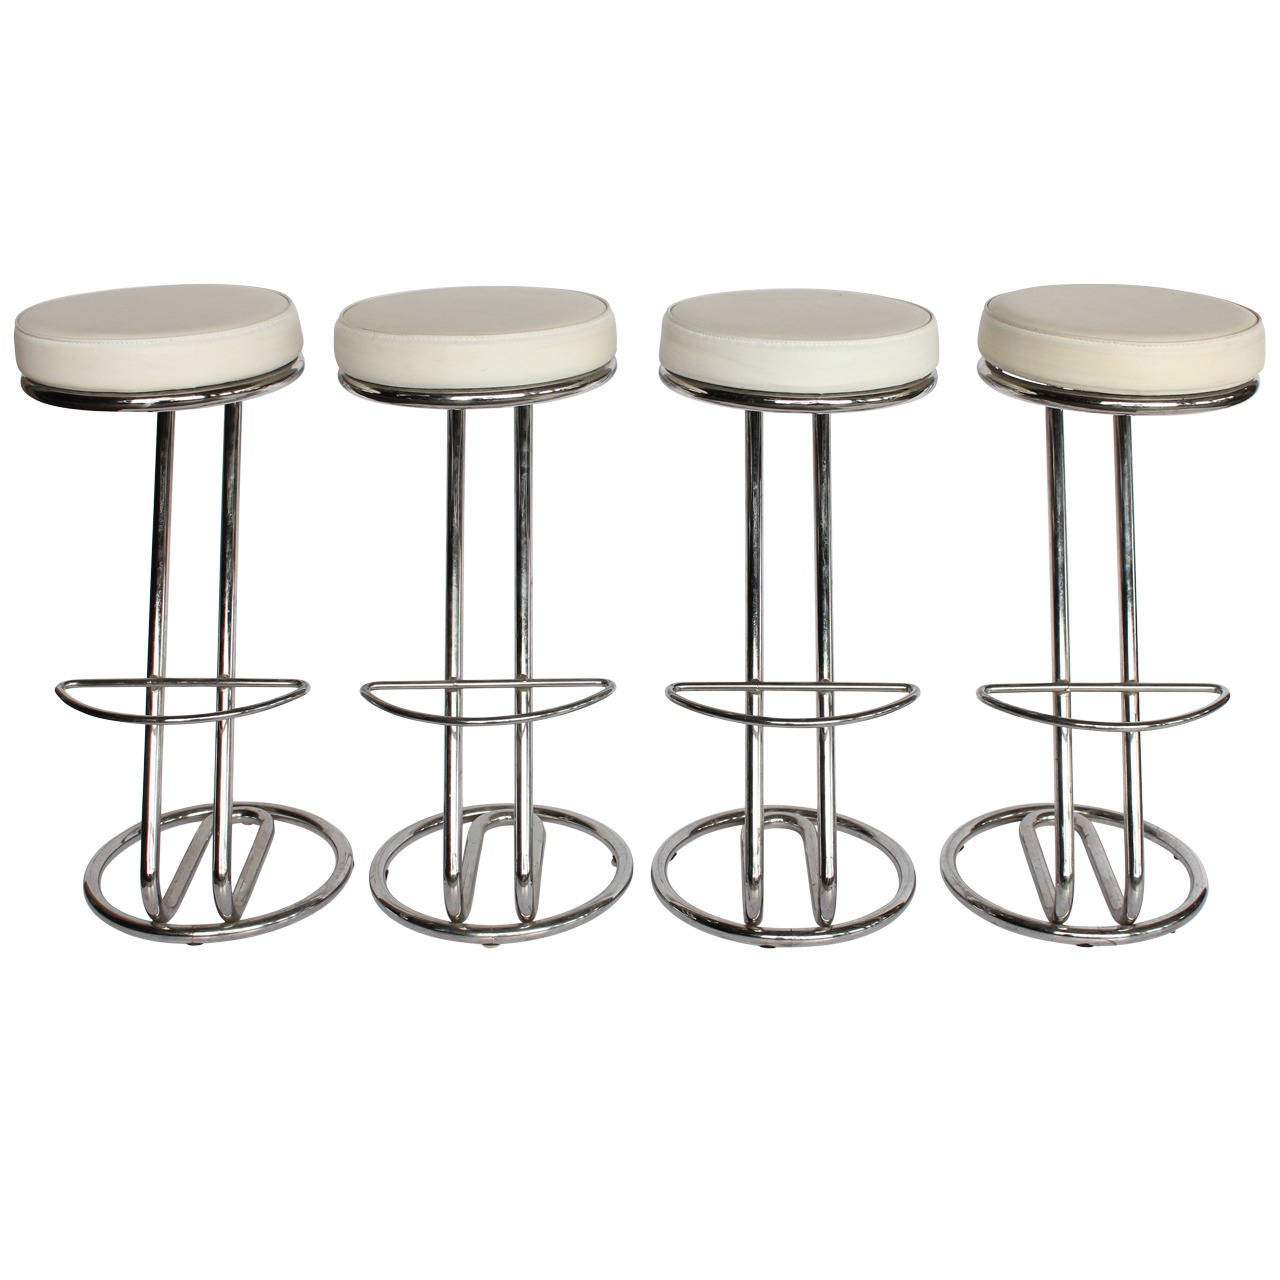 "Modern Leather and Chrome Tube ""Z"" Stools"